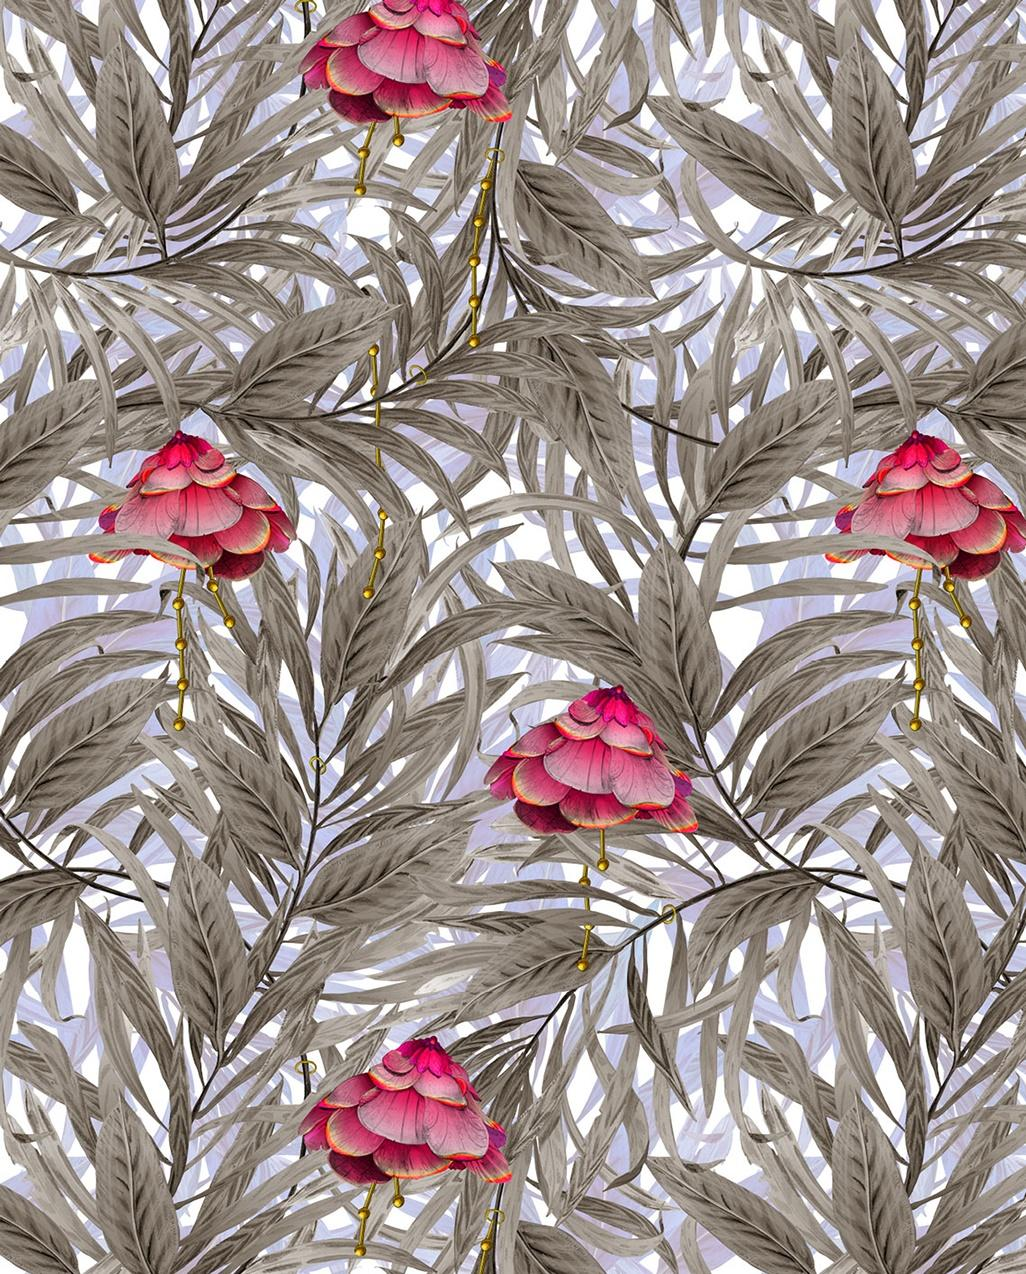 09._Pearls_in_the_Camellias_Velvet_Fabric